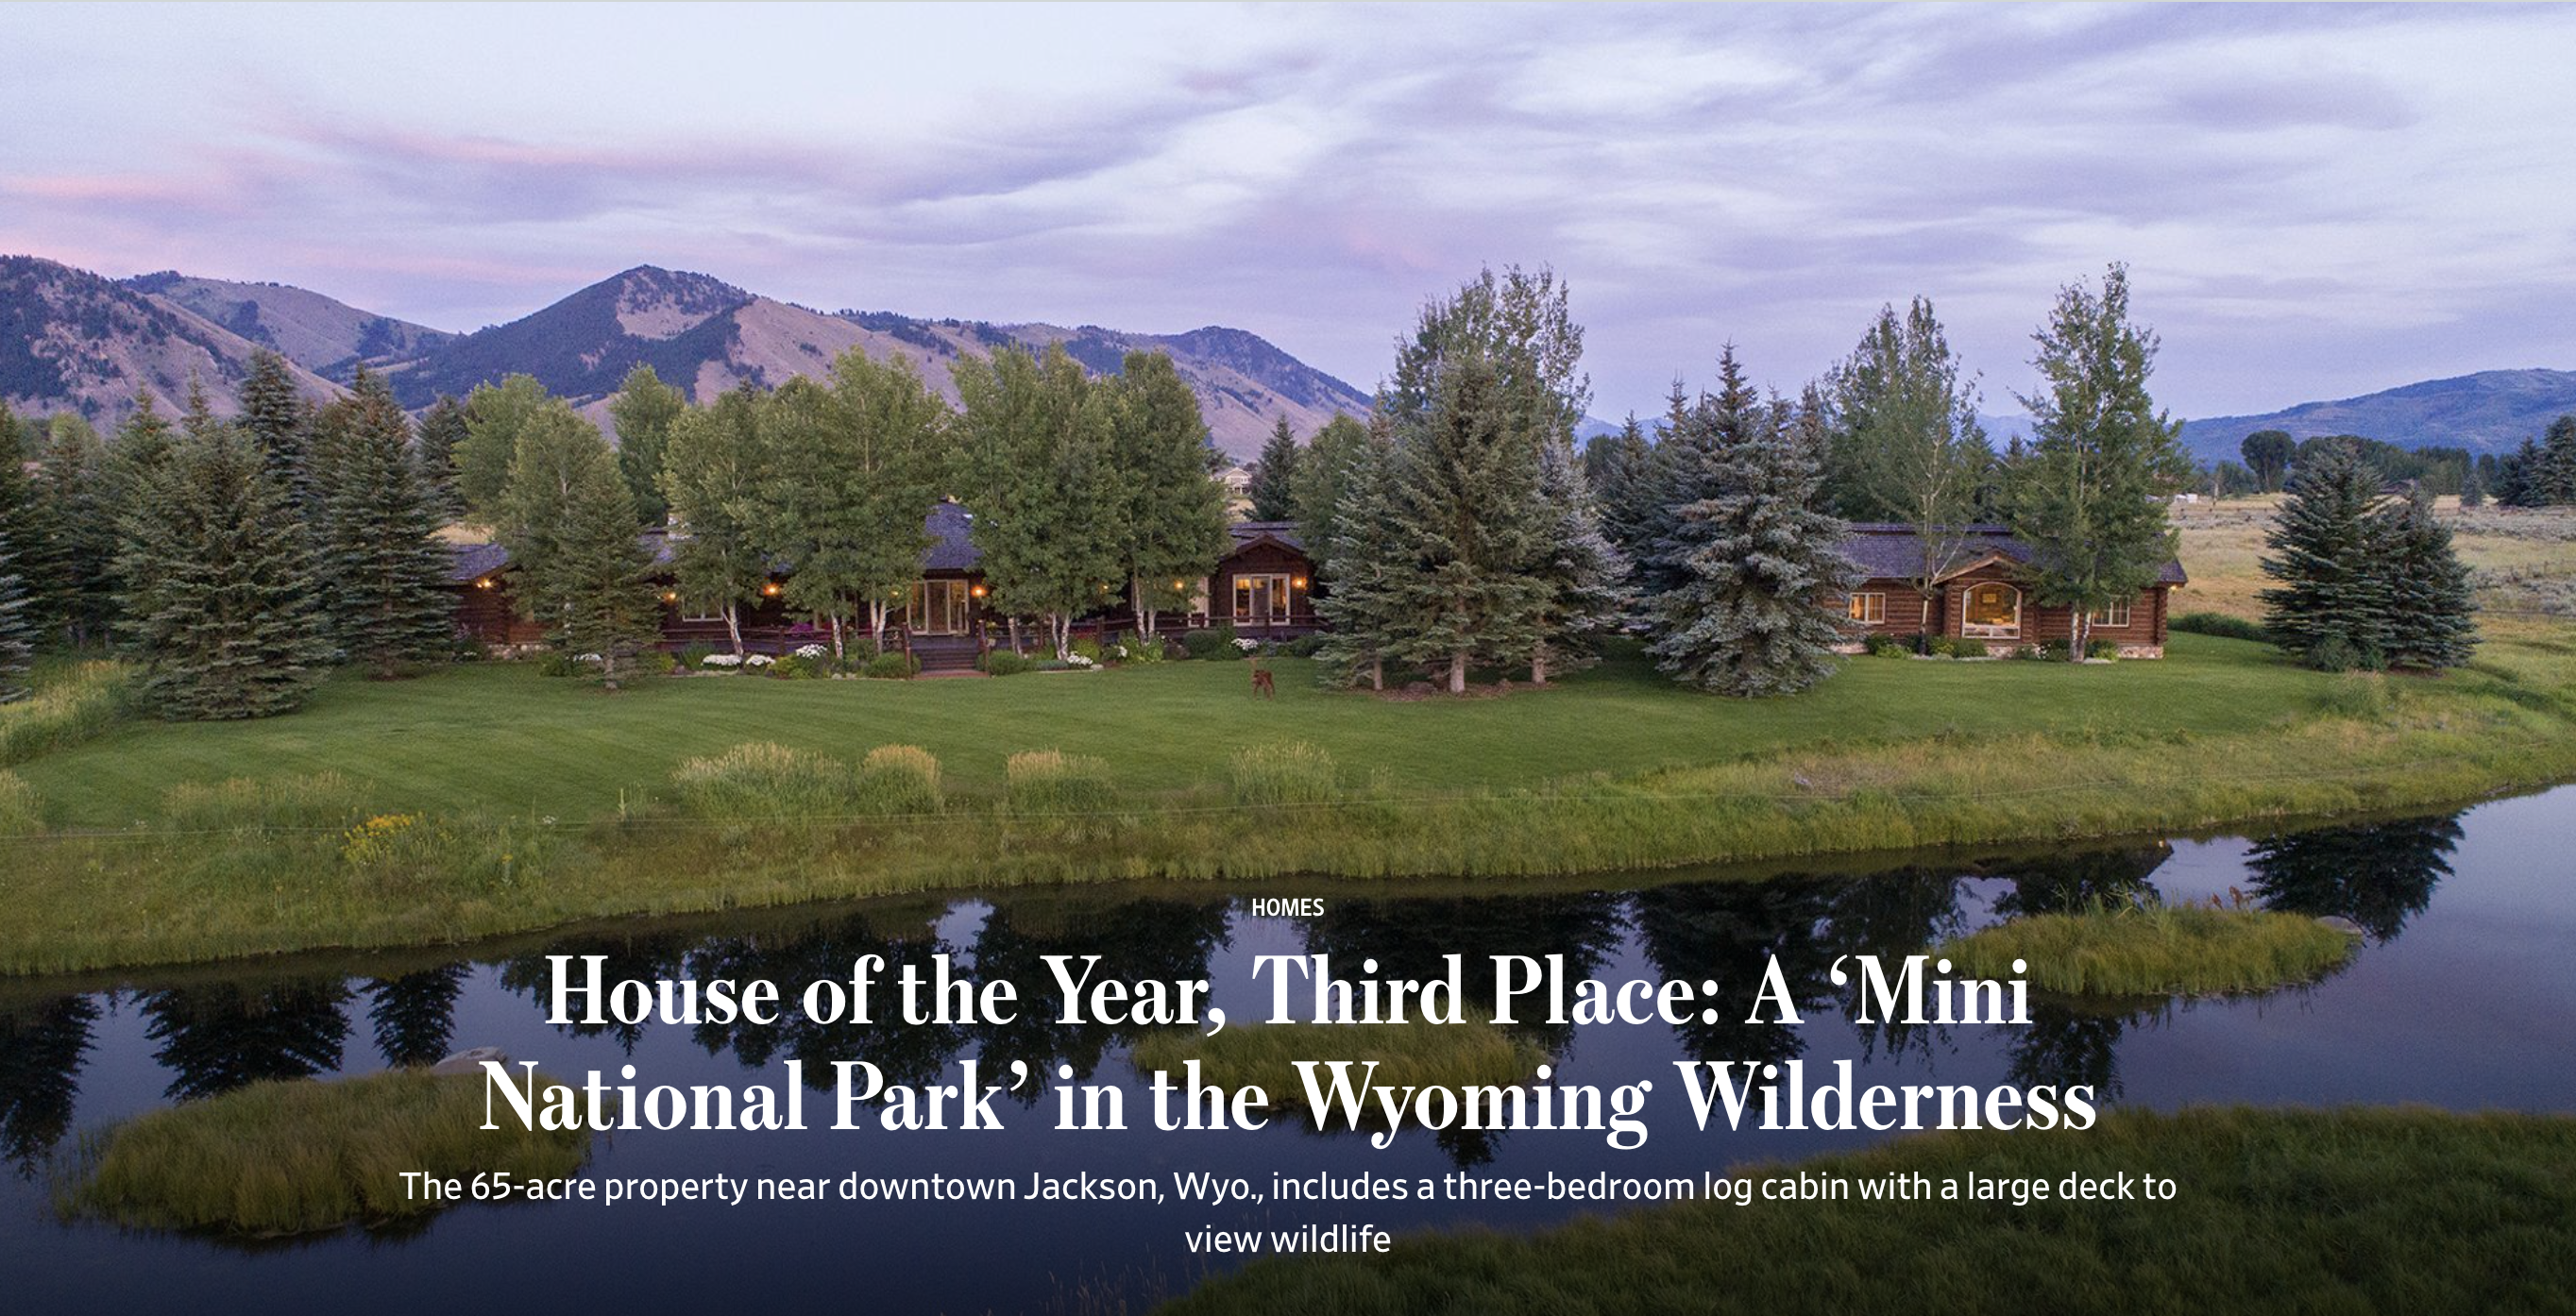 wall street journal house of the year cody creek sanctuary jackson hole wyoming